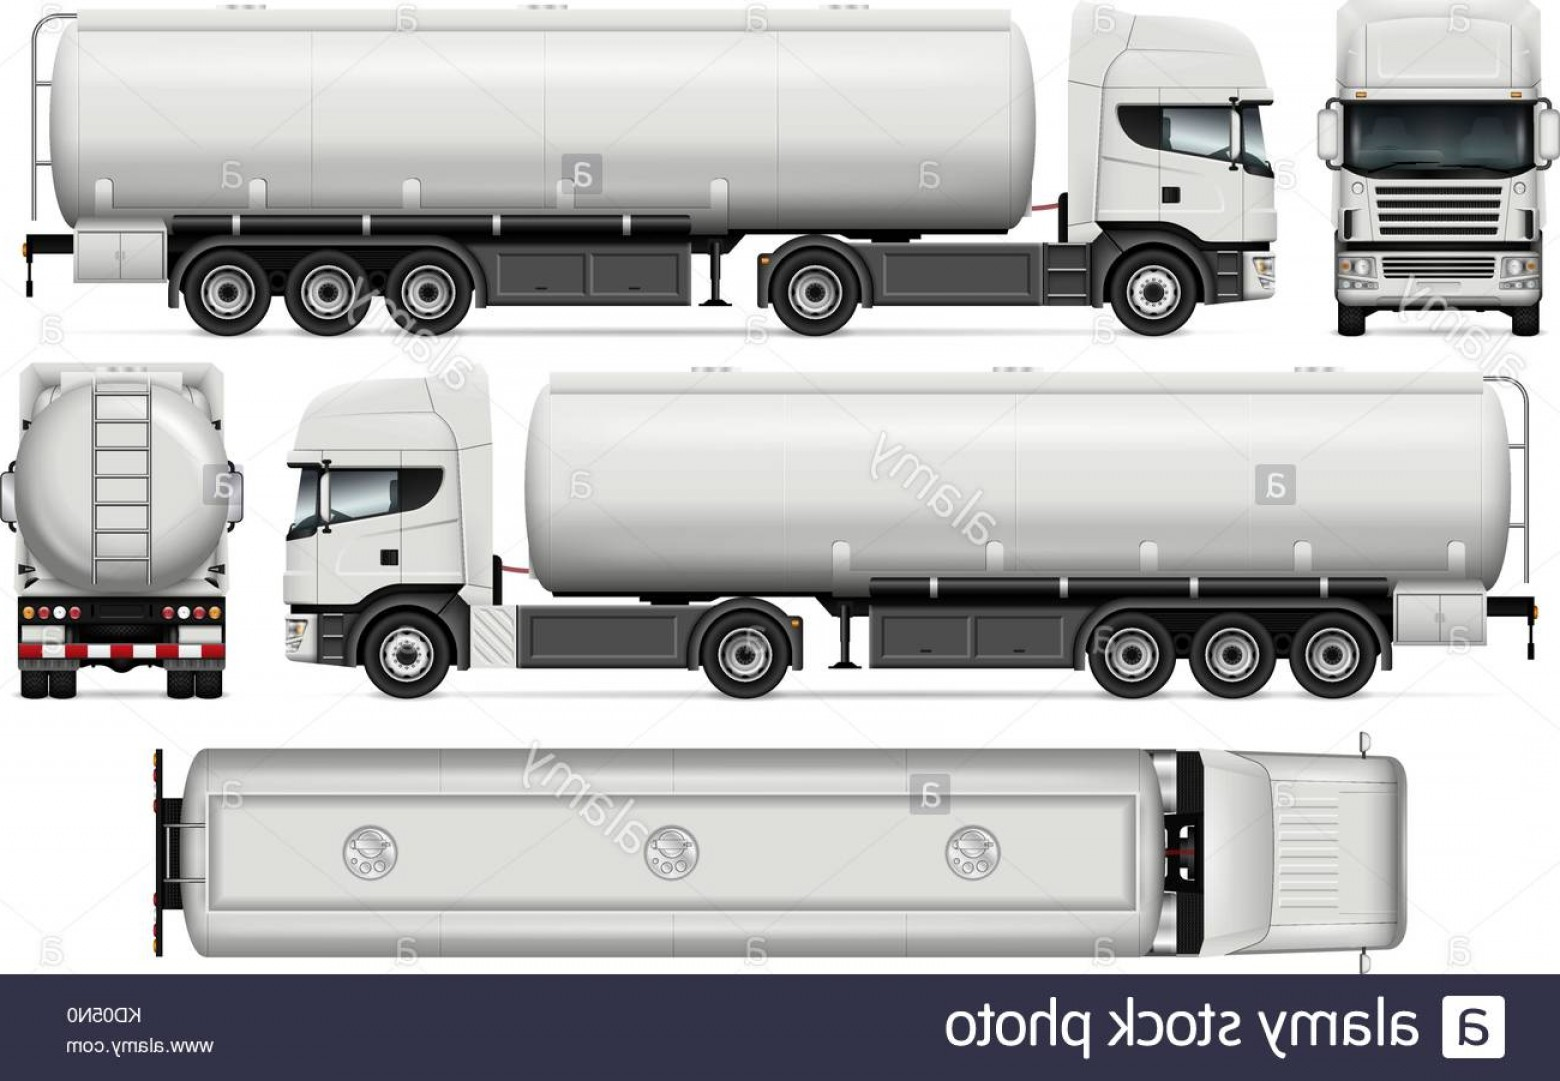 Tank Trucks Vector Art: Stock Image Tanker Truck Vector Mock Up For Car Branding And Advertising Elements